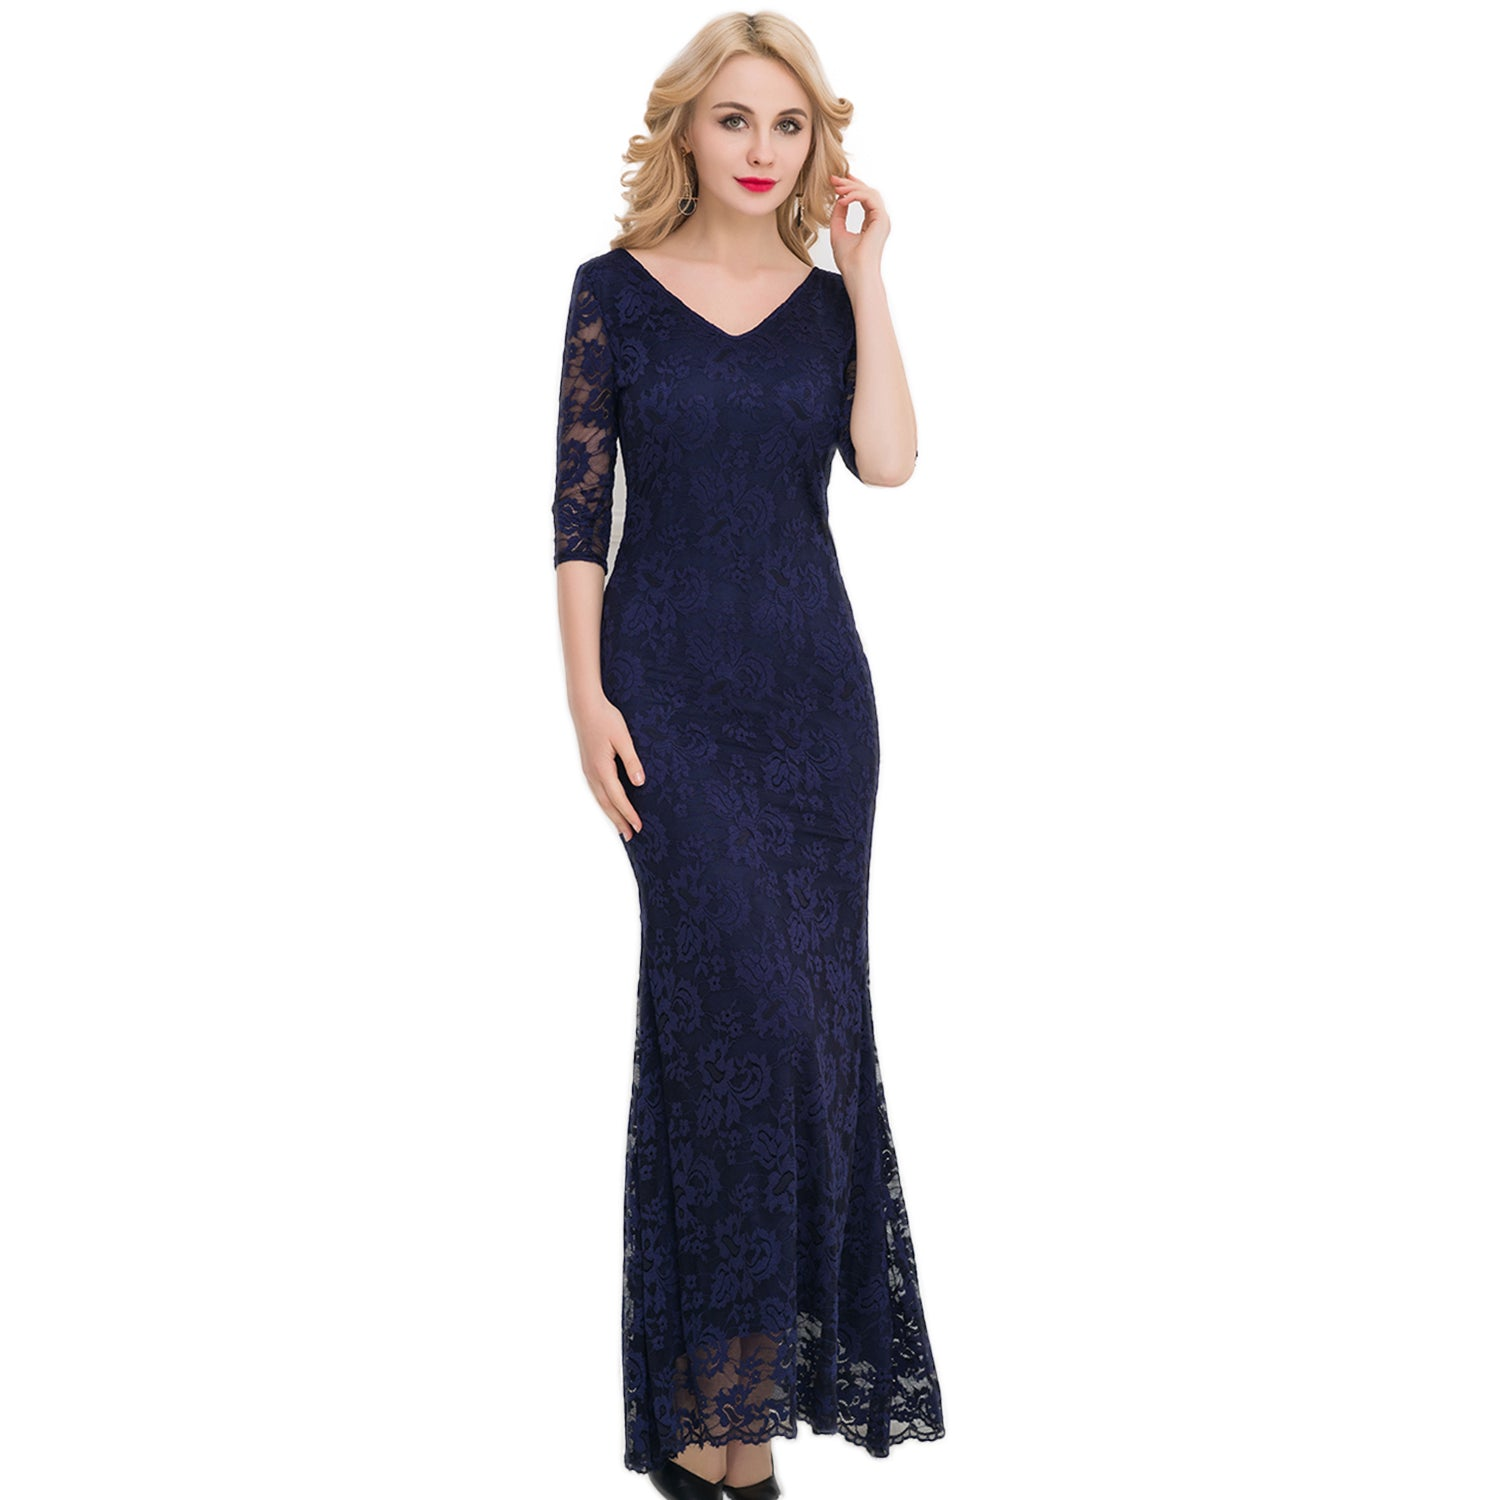 Jaune London Lace Midnight Blue V Neck Queen Ann A Line Gown